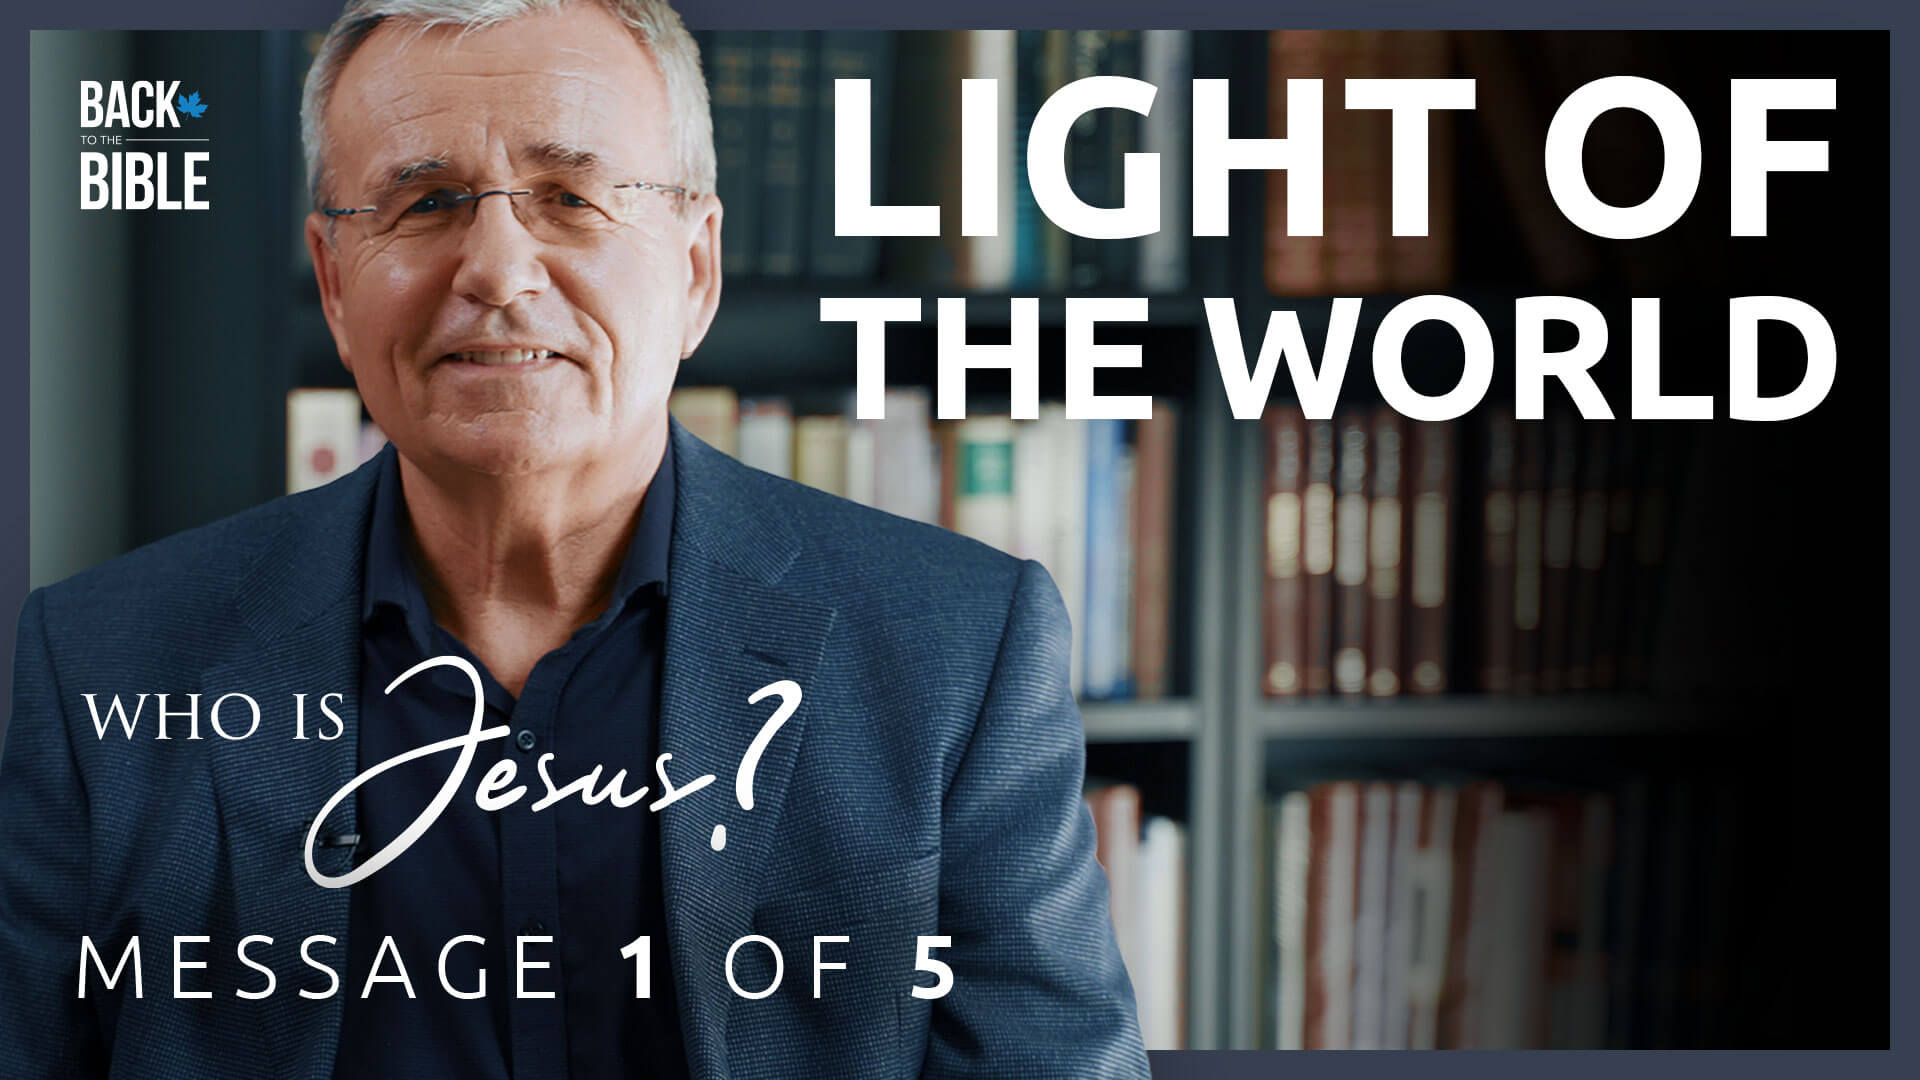 Light of the World - Who is Jesus? - Dr. John Neufeld - Back to the Bible Canada